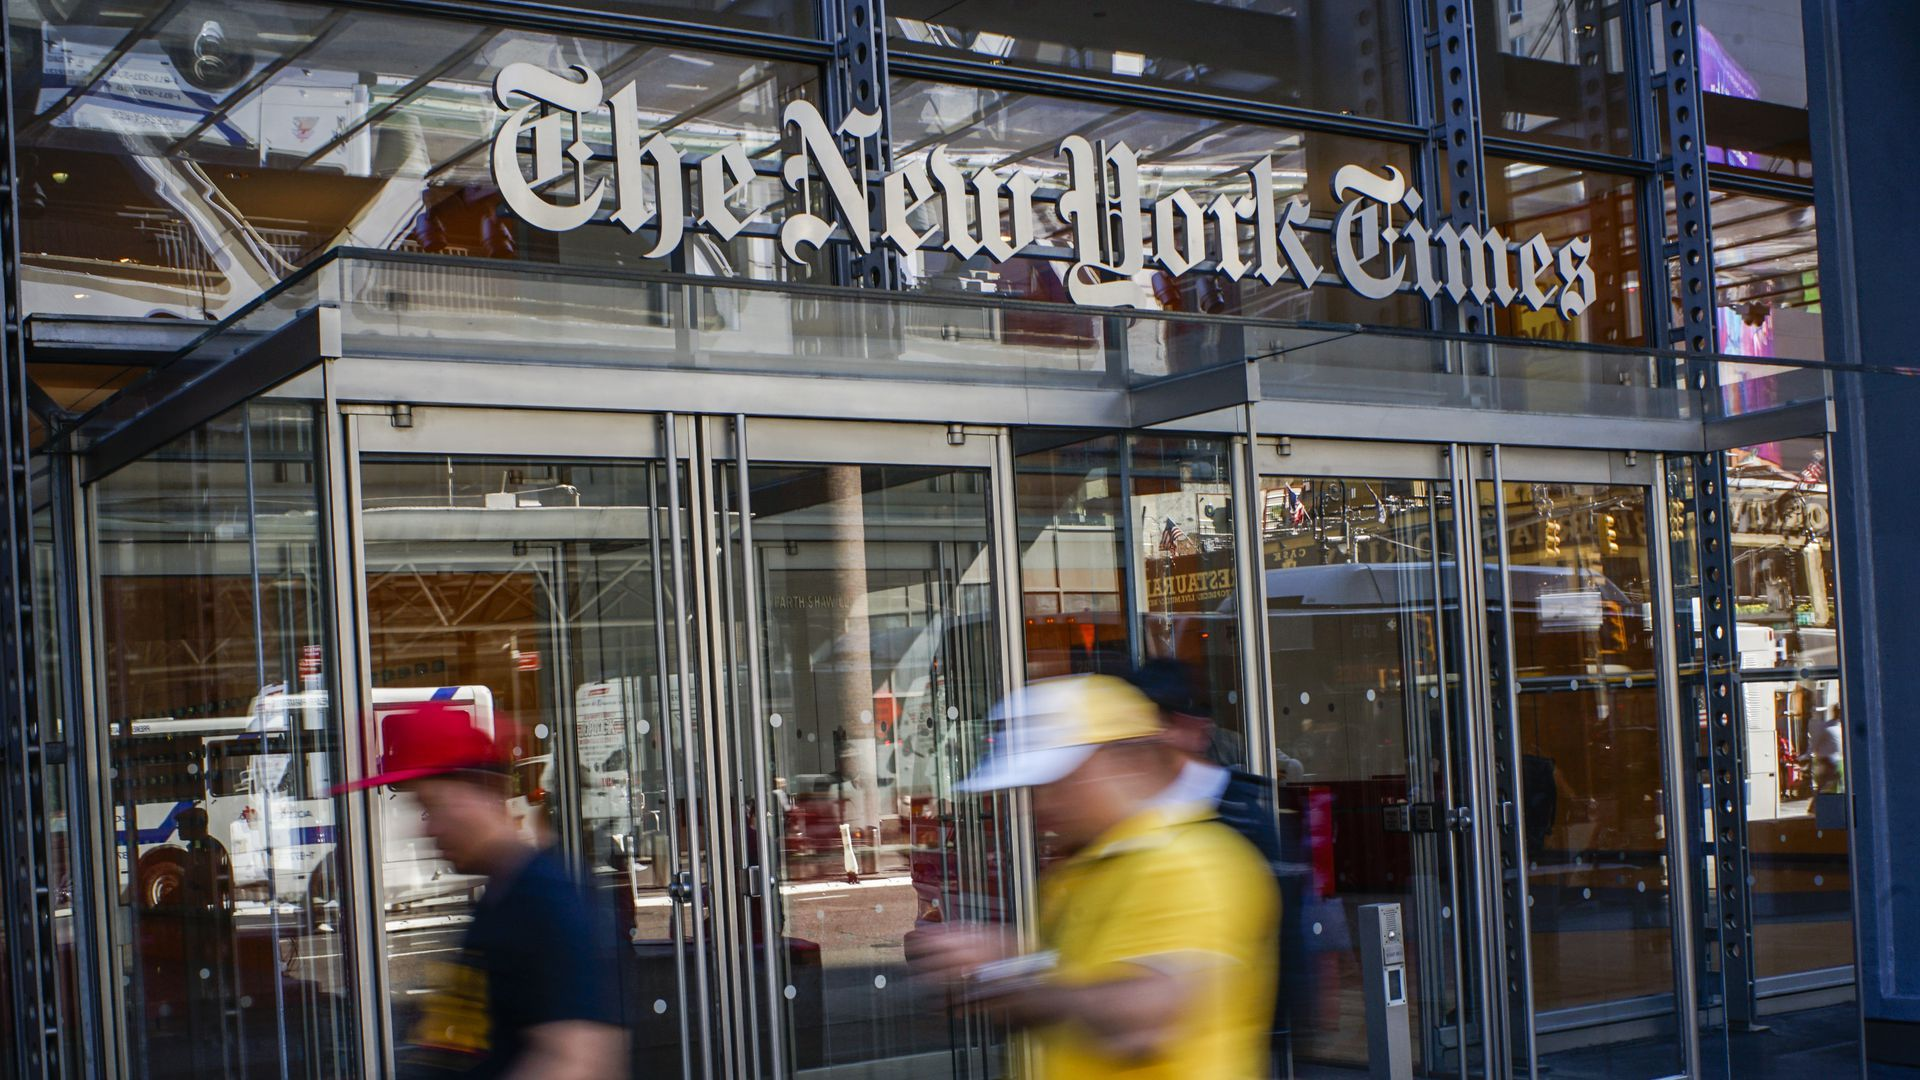 Exclusive: New York Times phasing out all 3rd-party advertising data